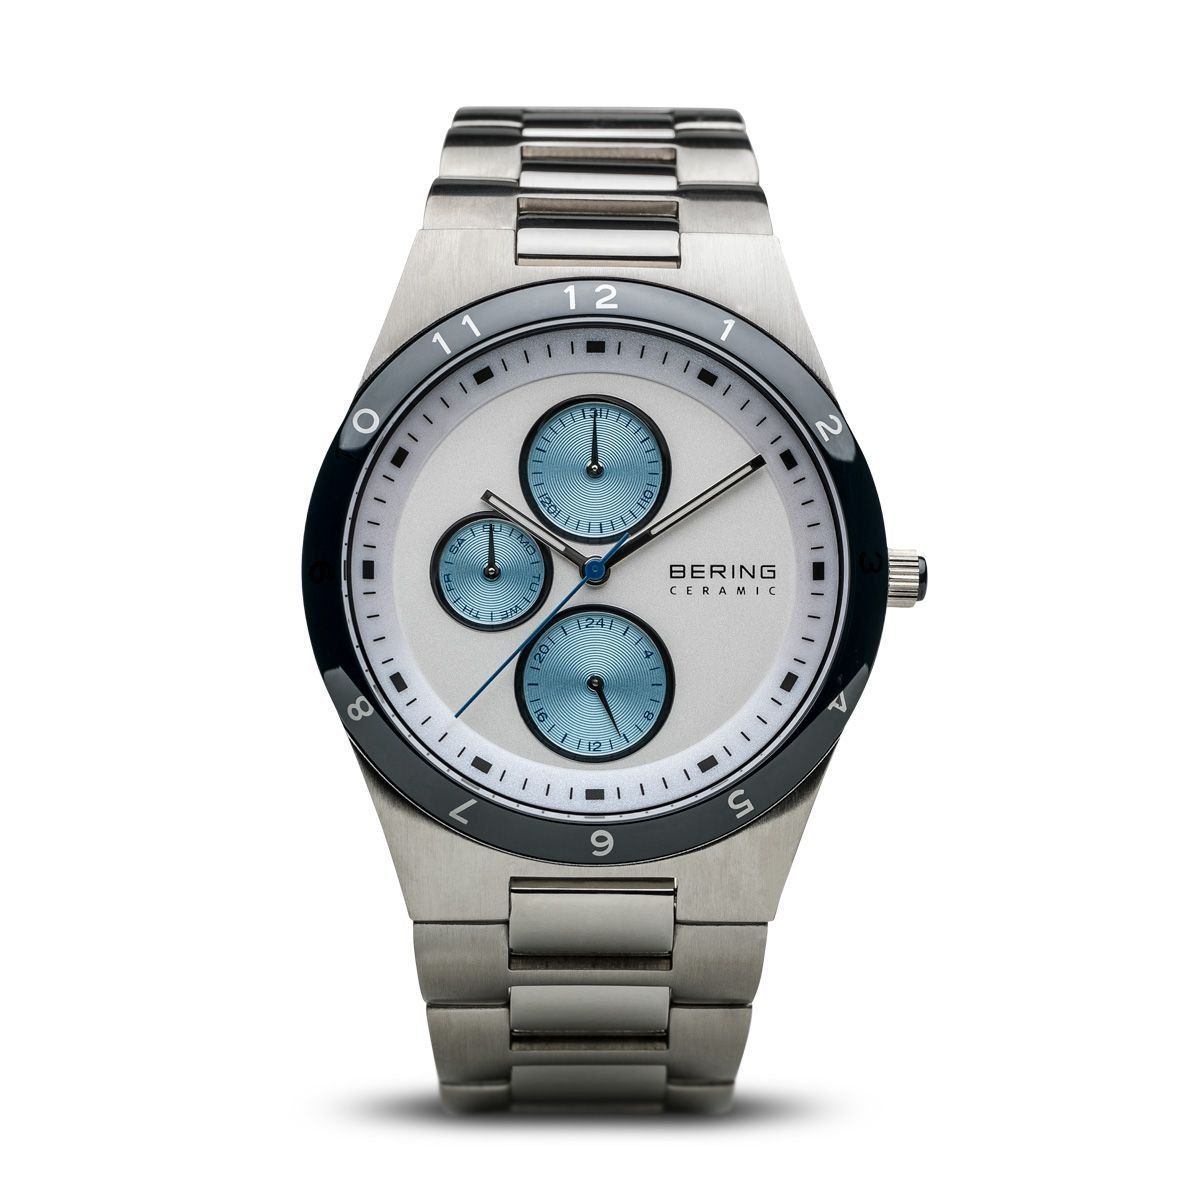 Bering Men's Ceramic Watch with Steel Strap Watches Bering